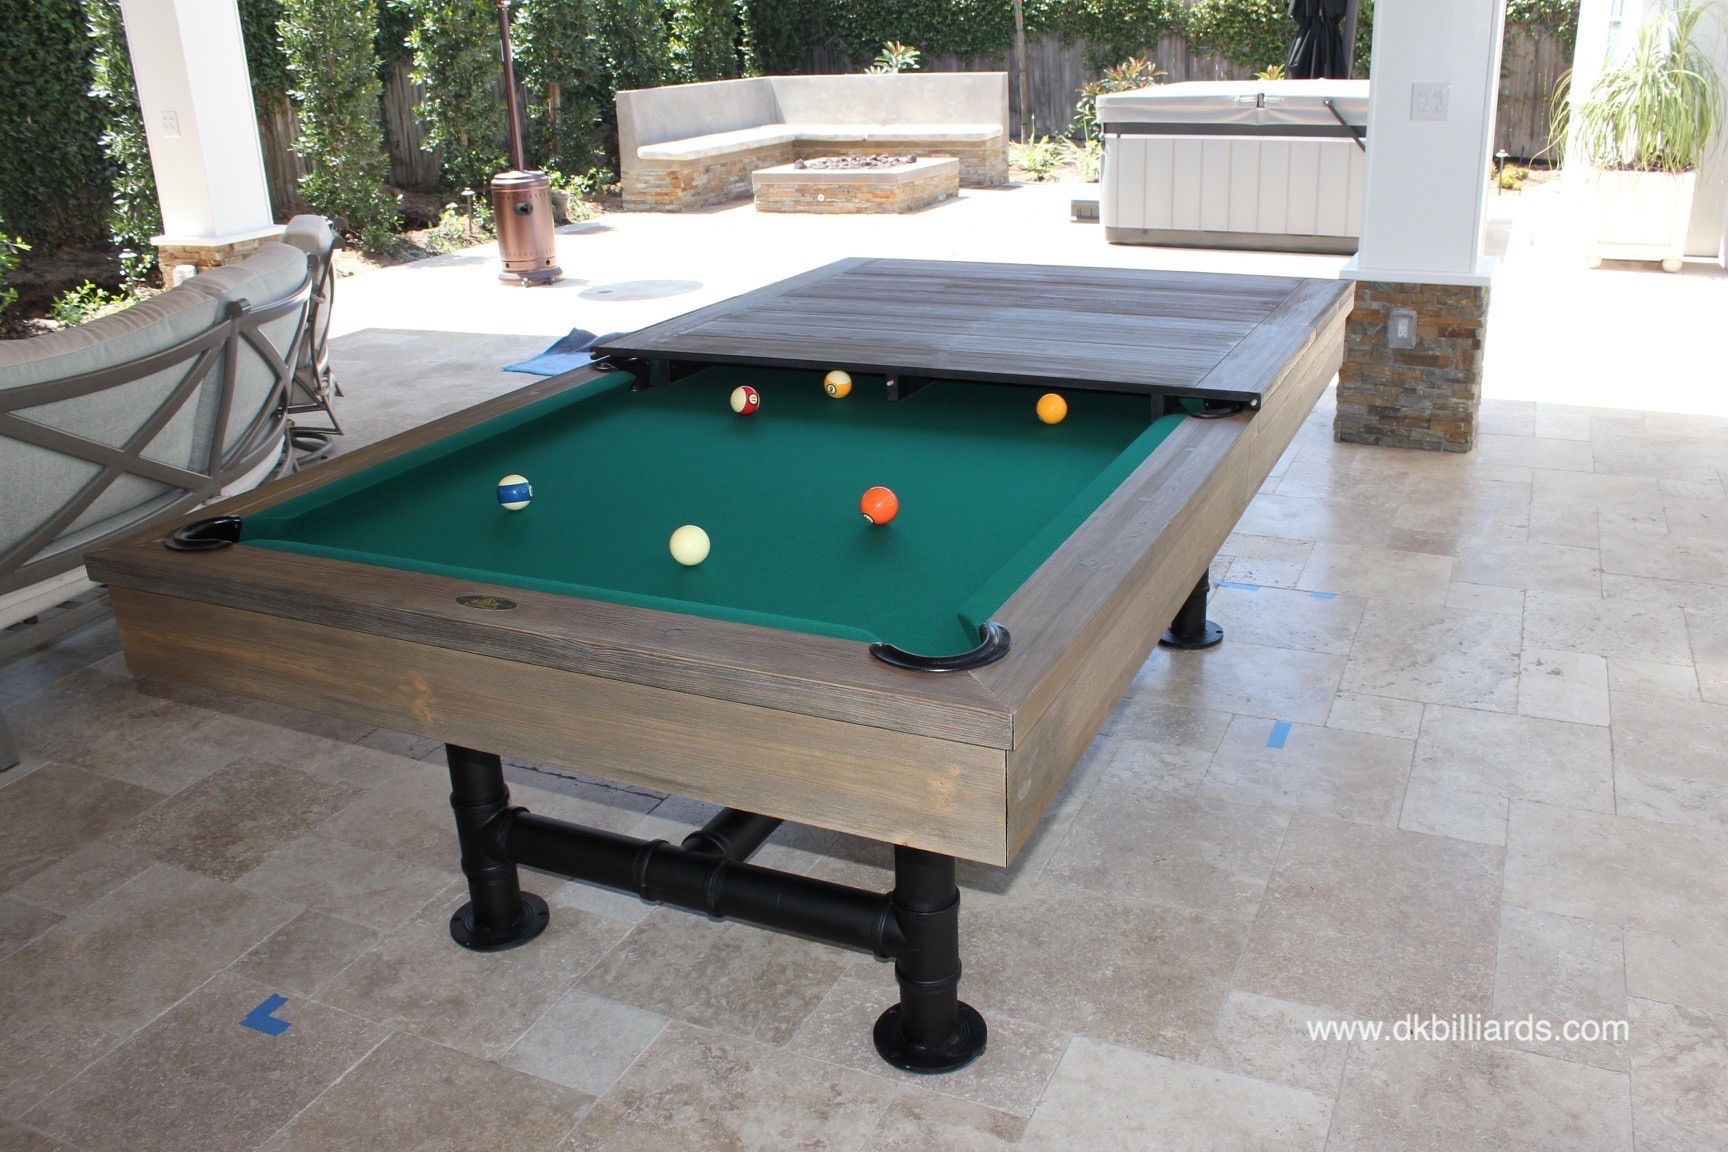 The Space This Family Created Was Multi Purpose And Perfect For  Entertaining. Dine Al Fresco, Shoot Pool, Watch The Game, And Relax On The  Sofas In The ...